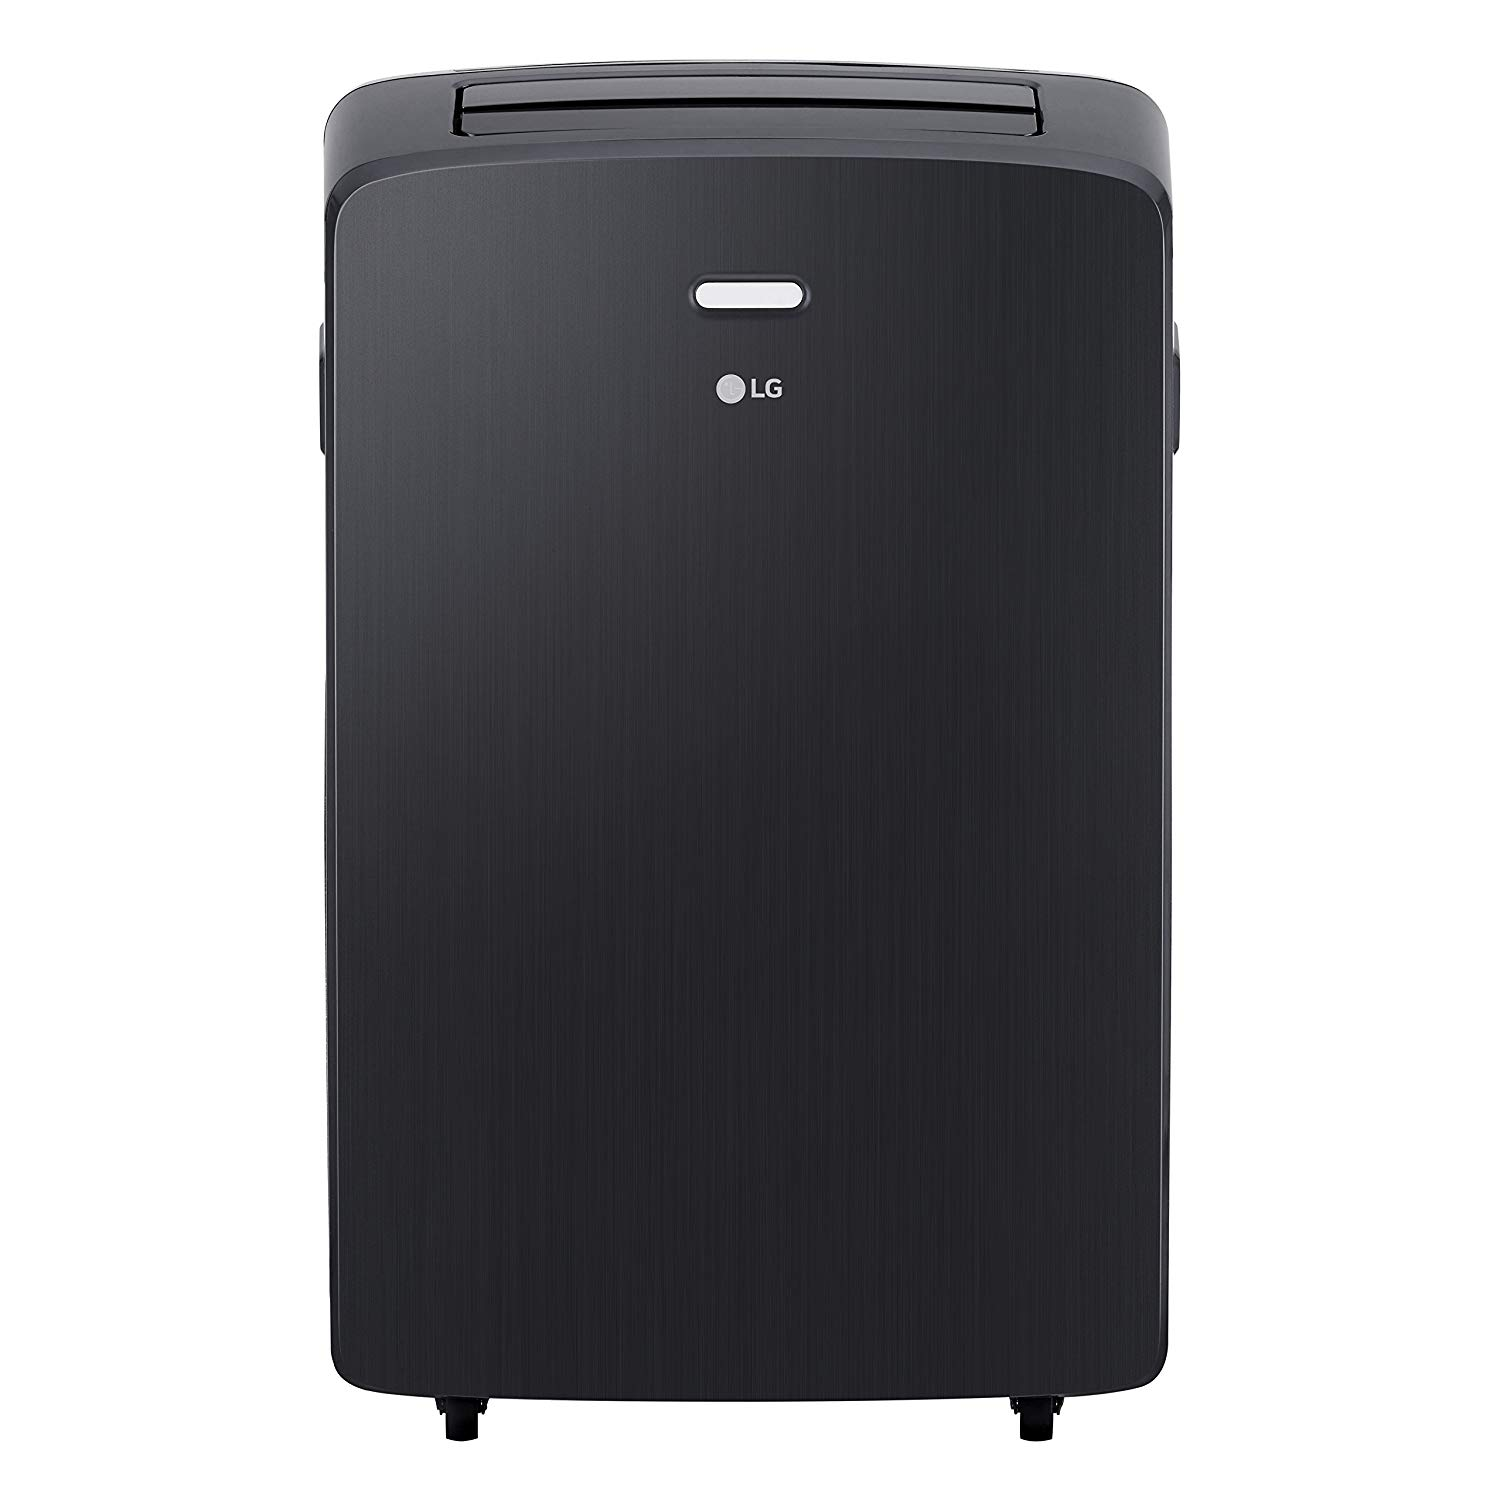 LG 115V Portable Air Conditioner with Remote Control, LP0817WSR